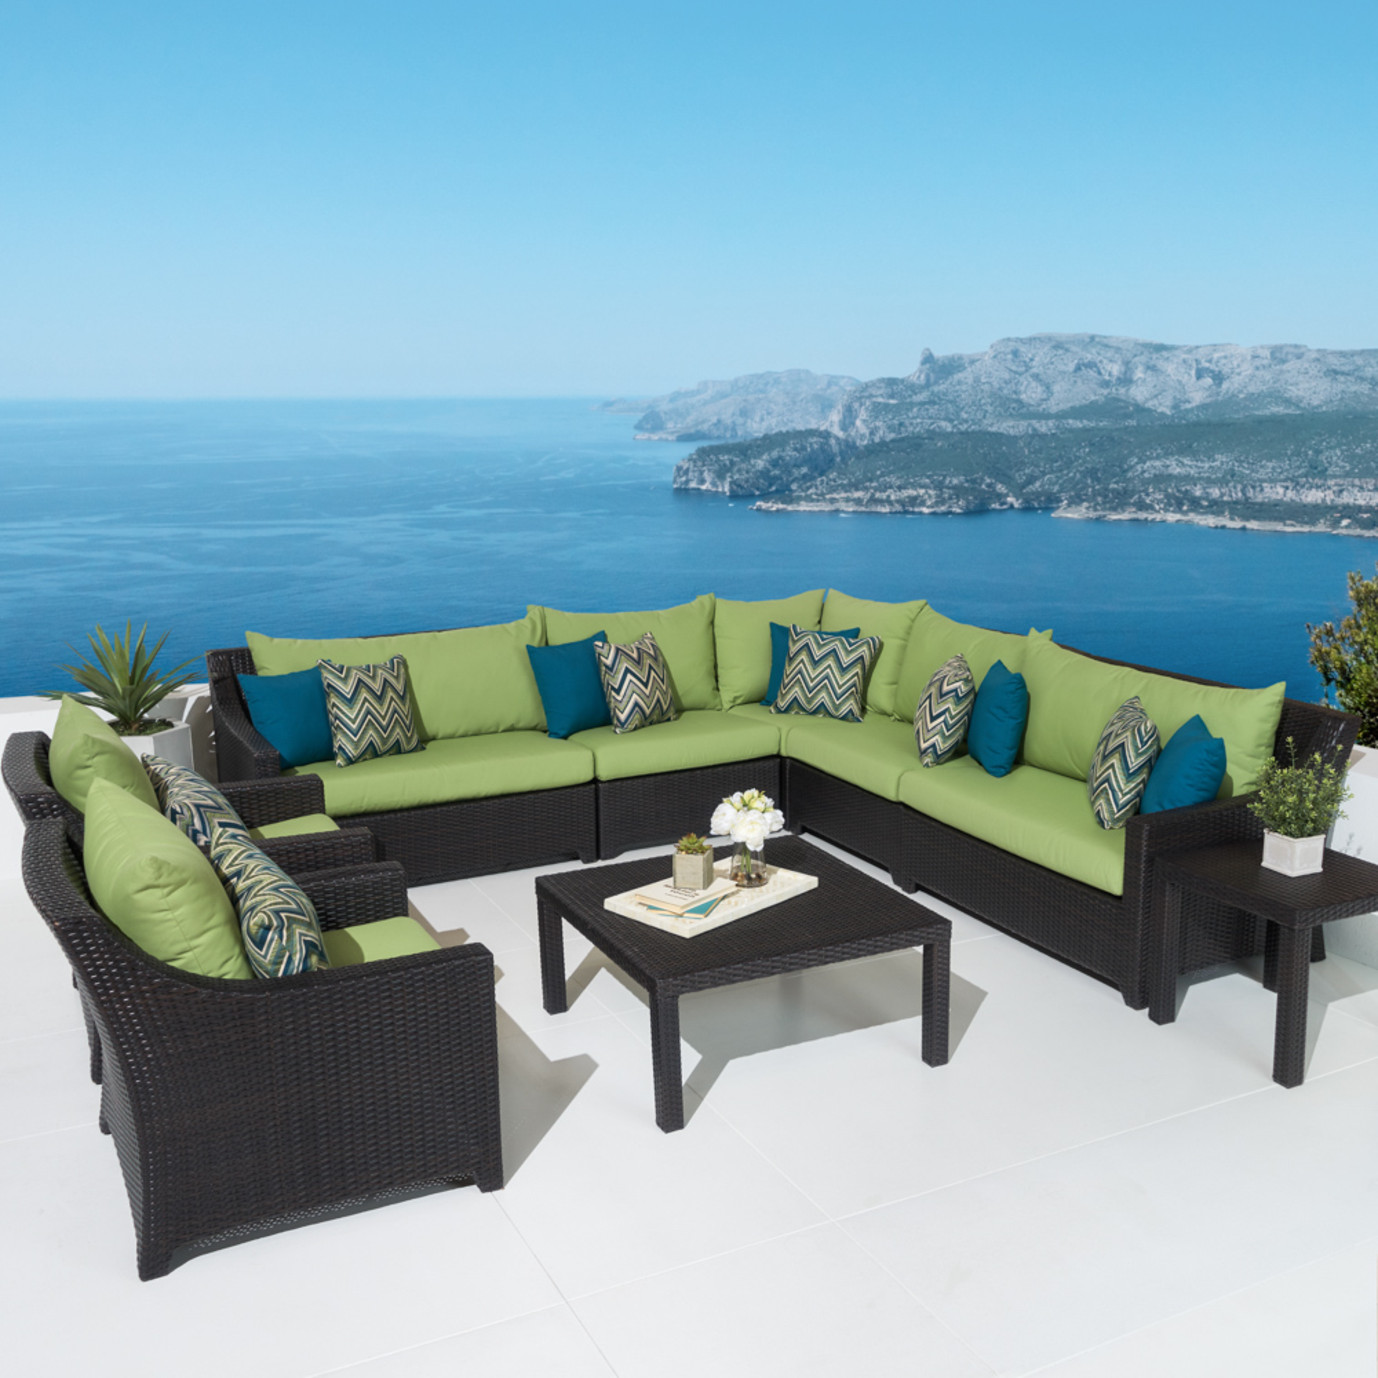 Deco™ 9 Piece Sectional and Club Set - Ginkgo Green